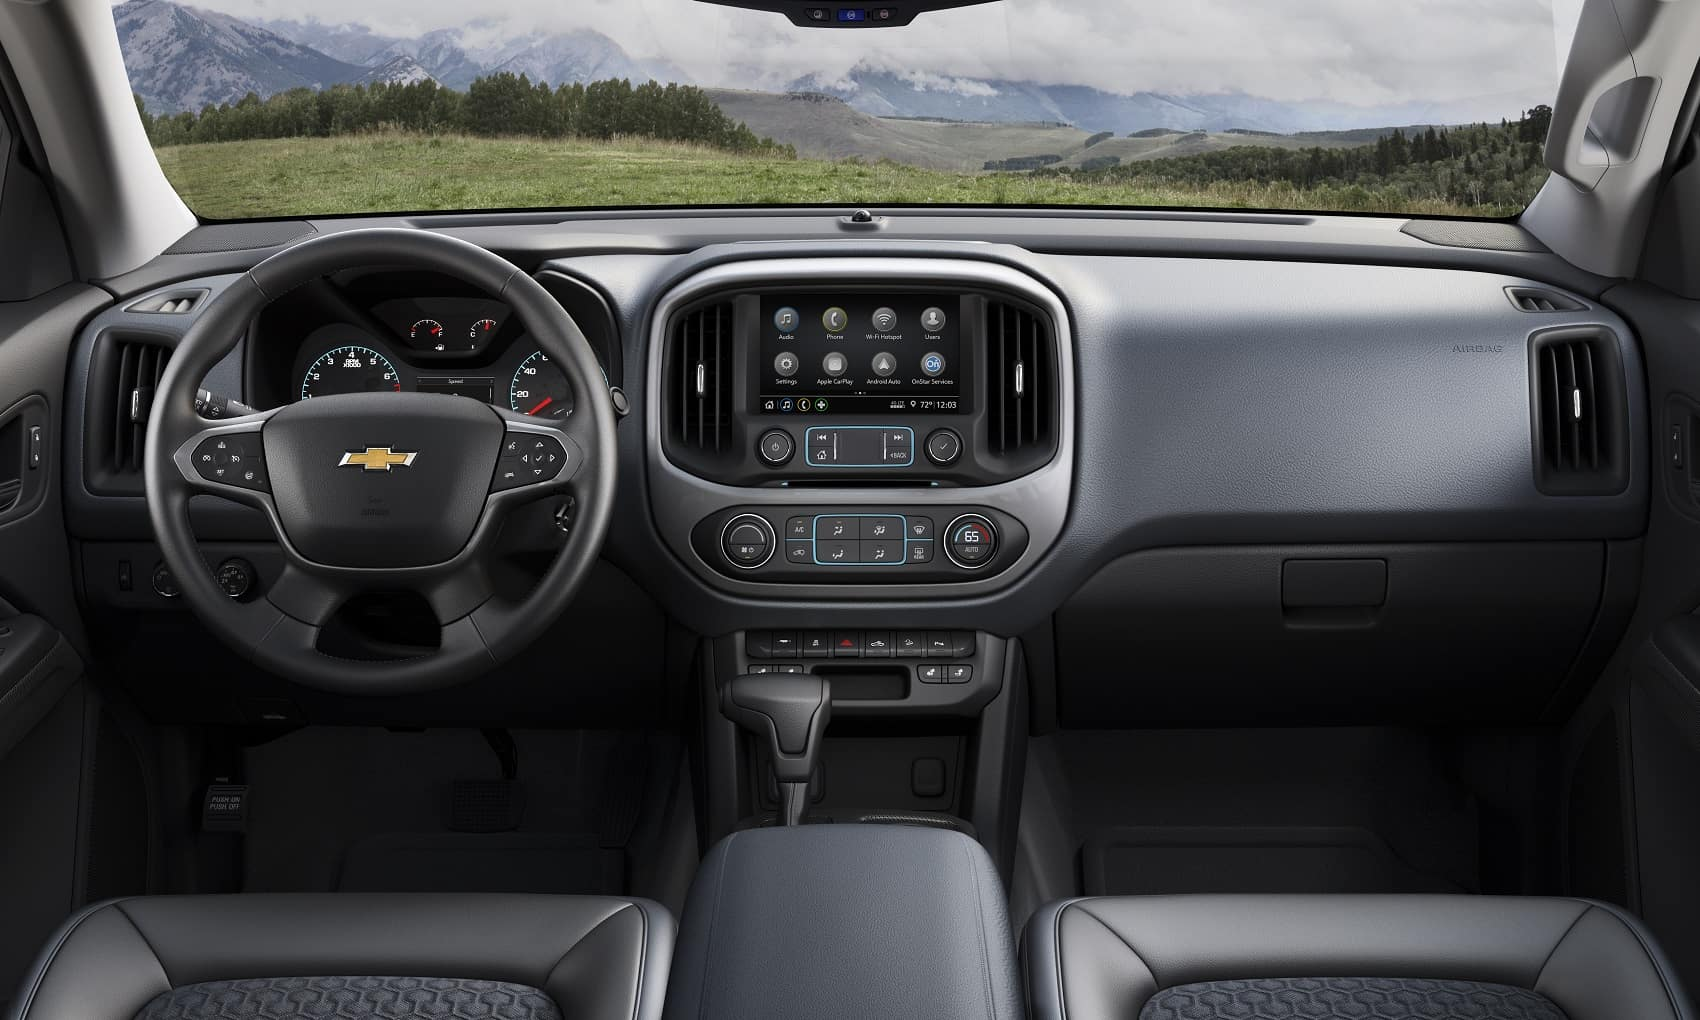 2021 Chevy Colorado Interior Technology